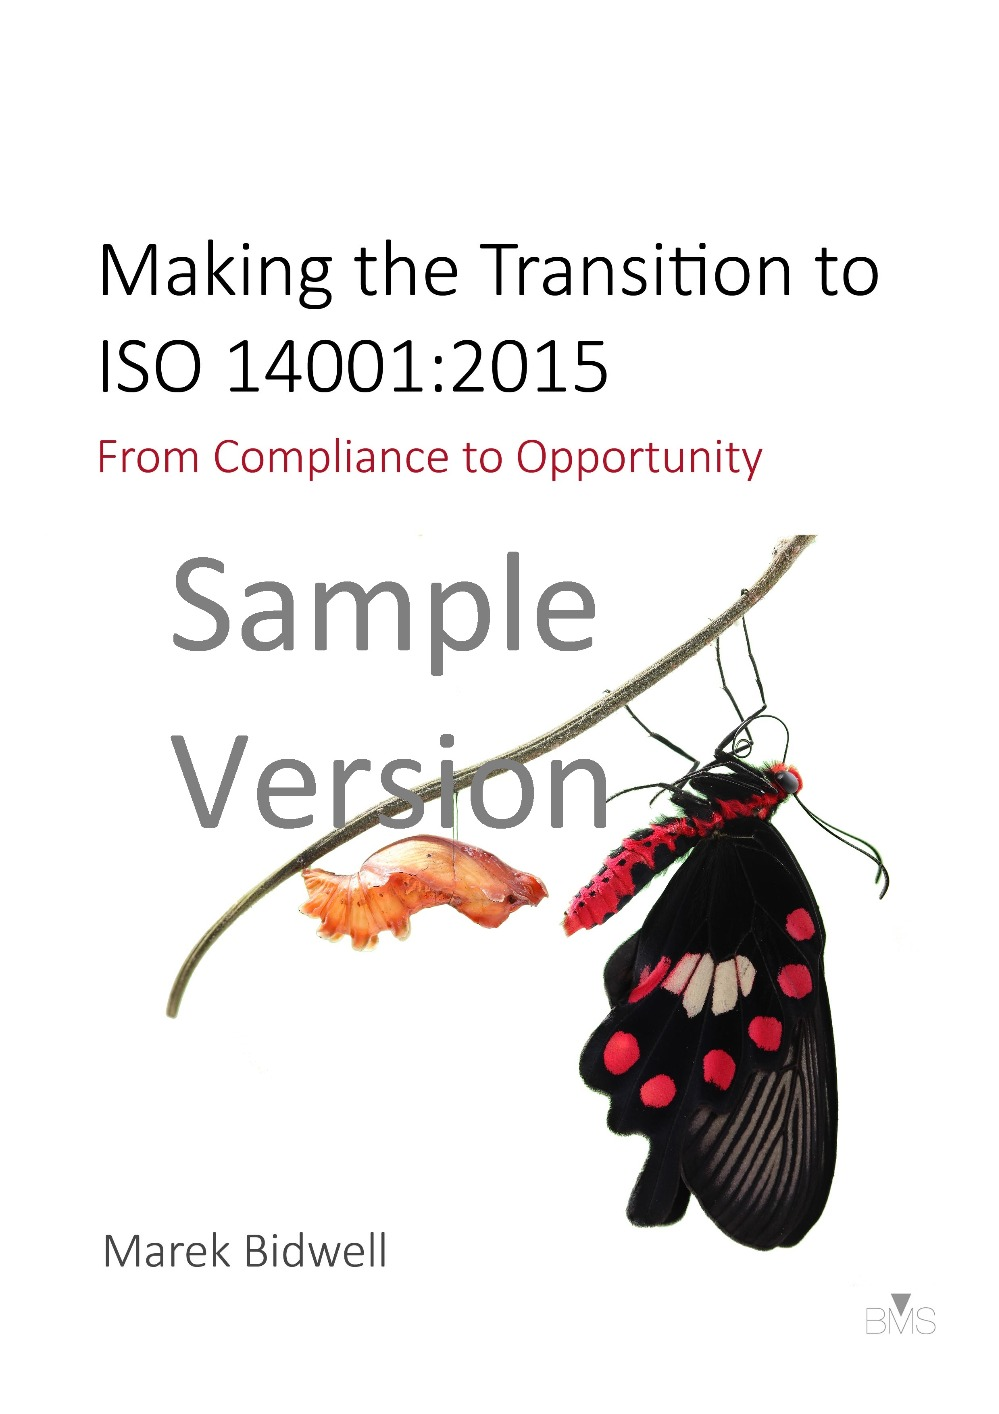 Making the Transition to ISO 14001:2015 - Sample Version